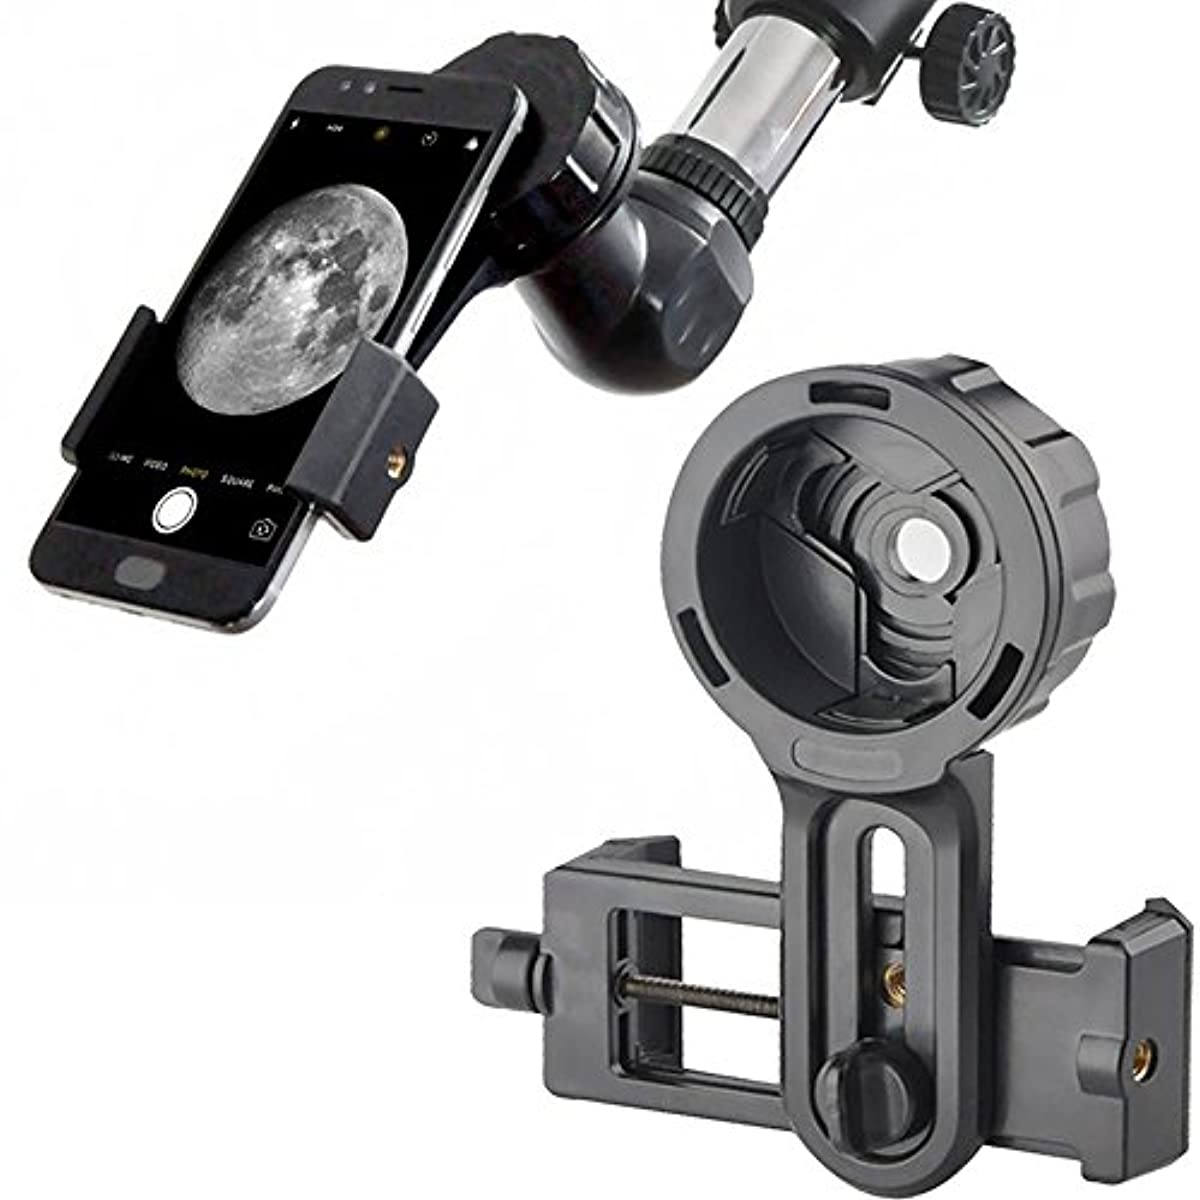 Landove Universal Cell Phone Smartphone Quick Photography Adapter